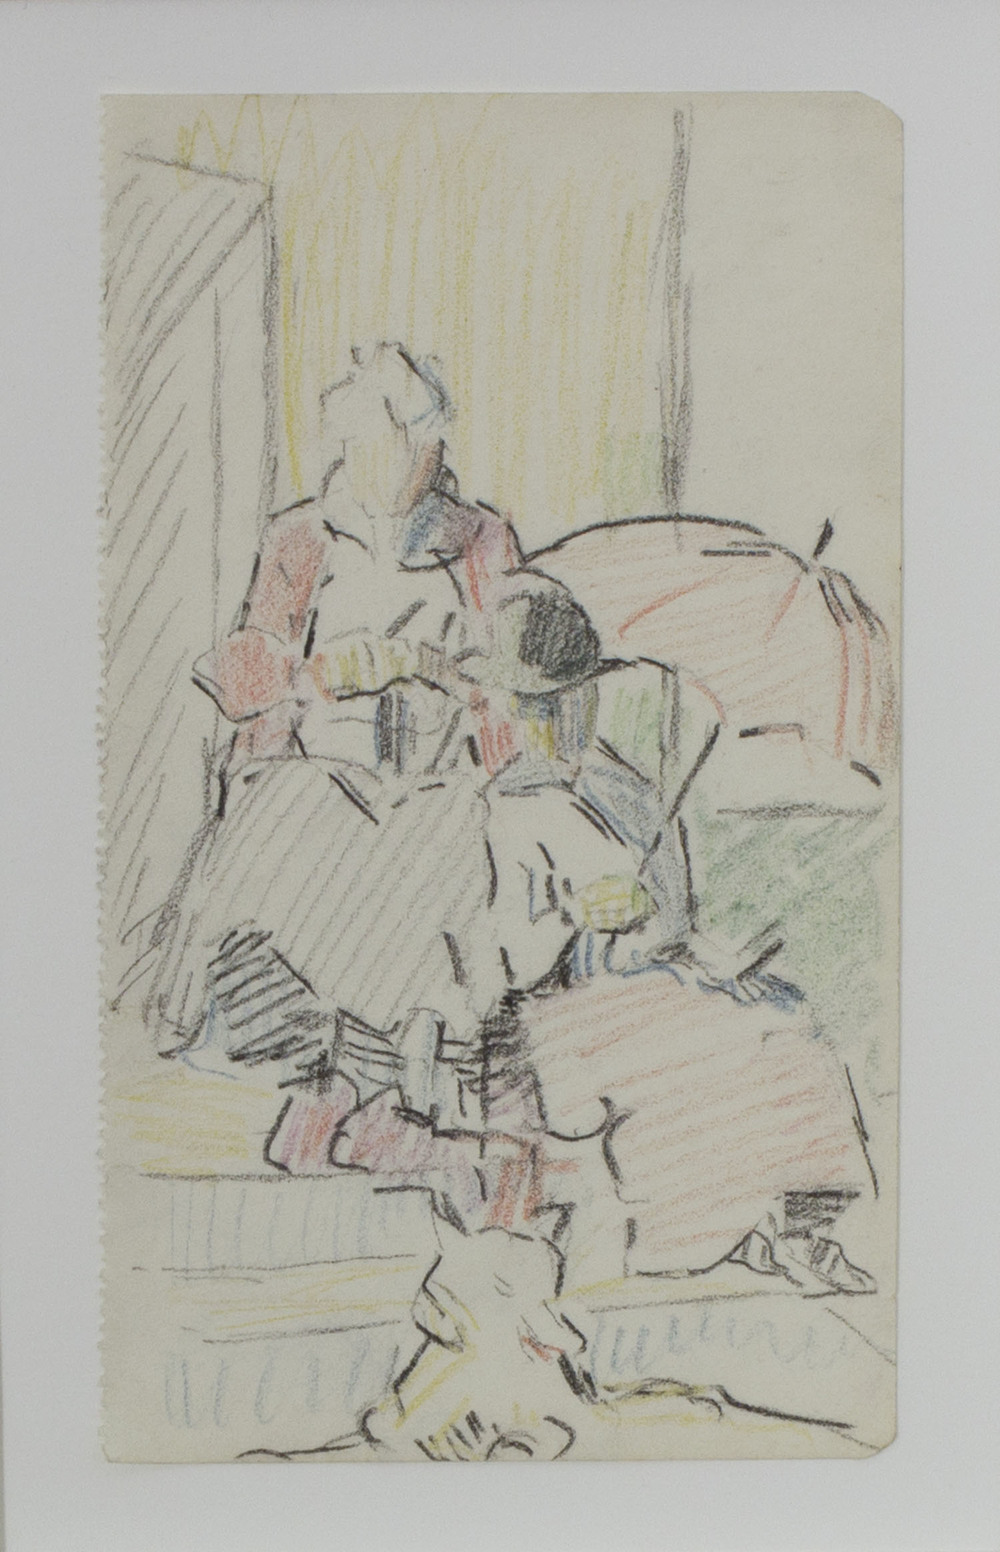 Mary Swanzy 'The Parasol' coloured pencil on paper 14x9cm.jpg